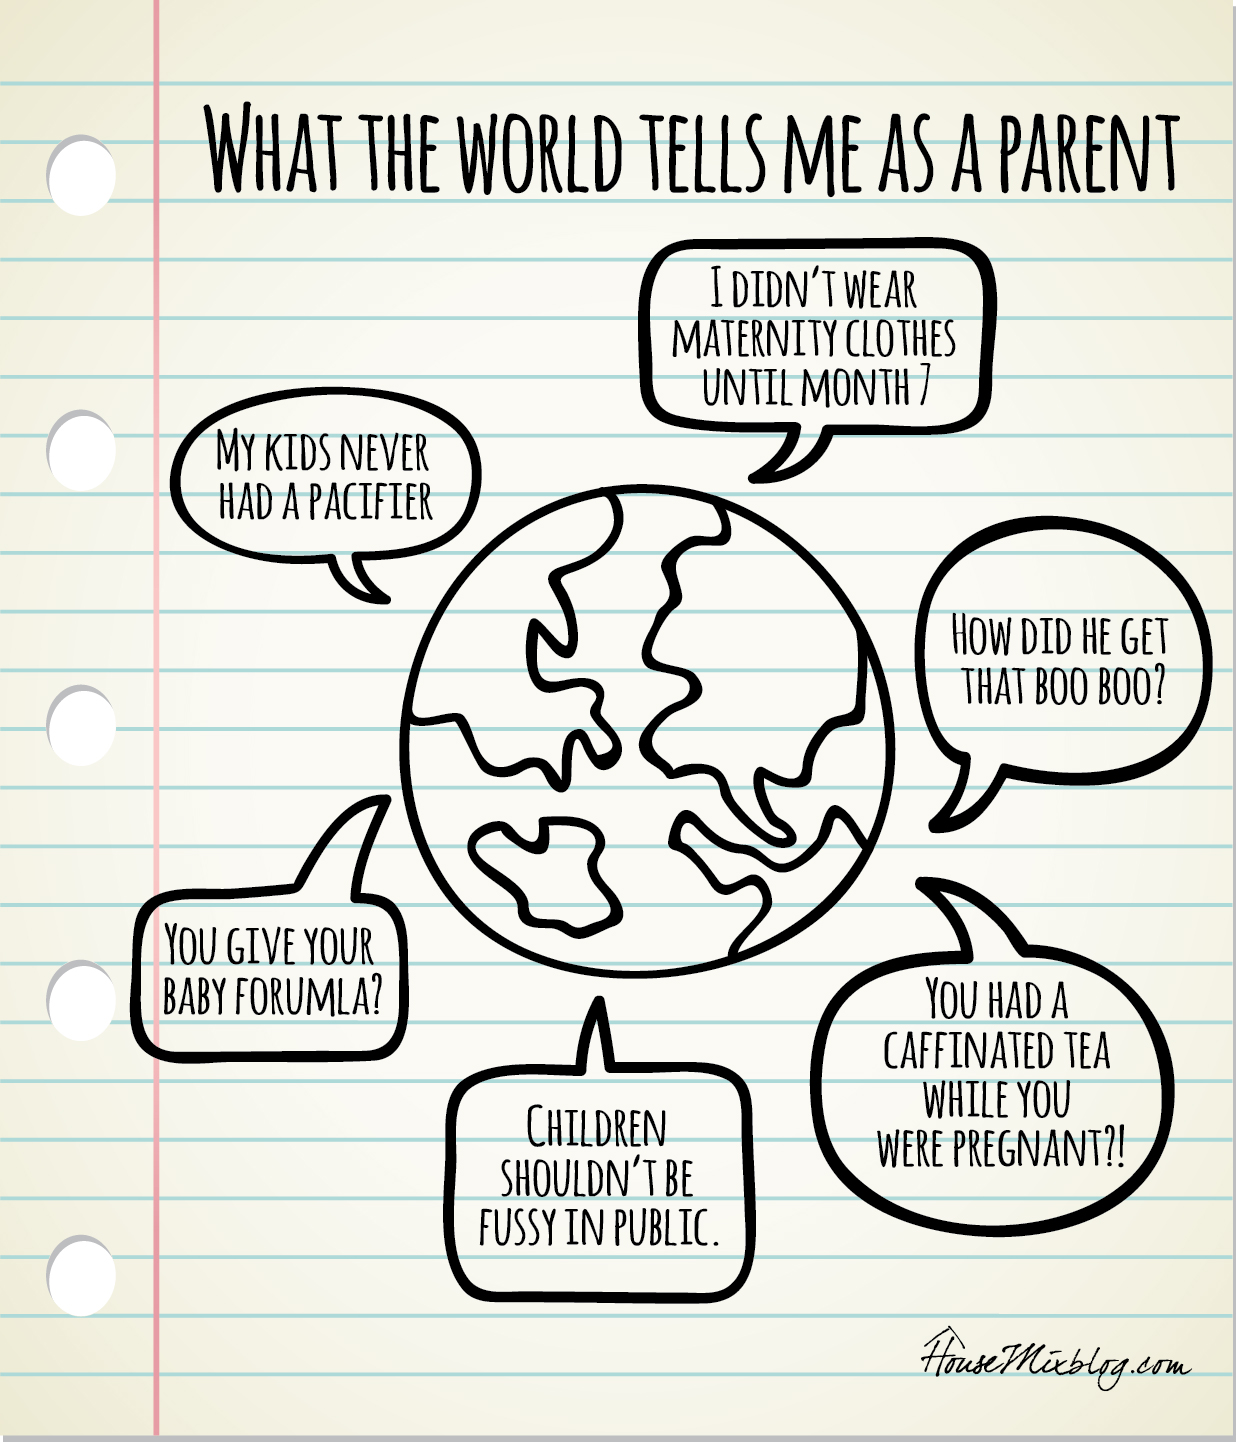 mom judgement - what the world tells me as a parent